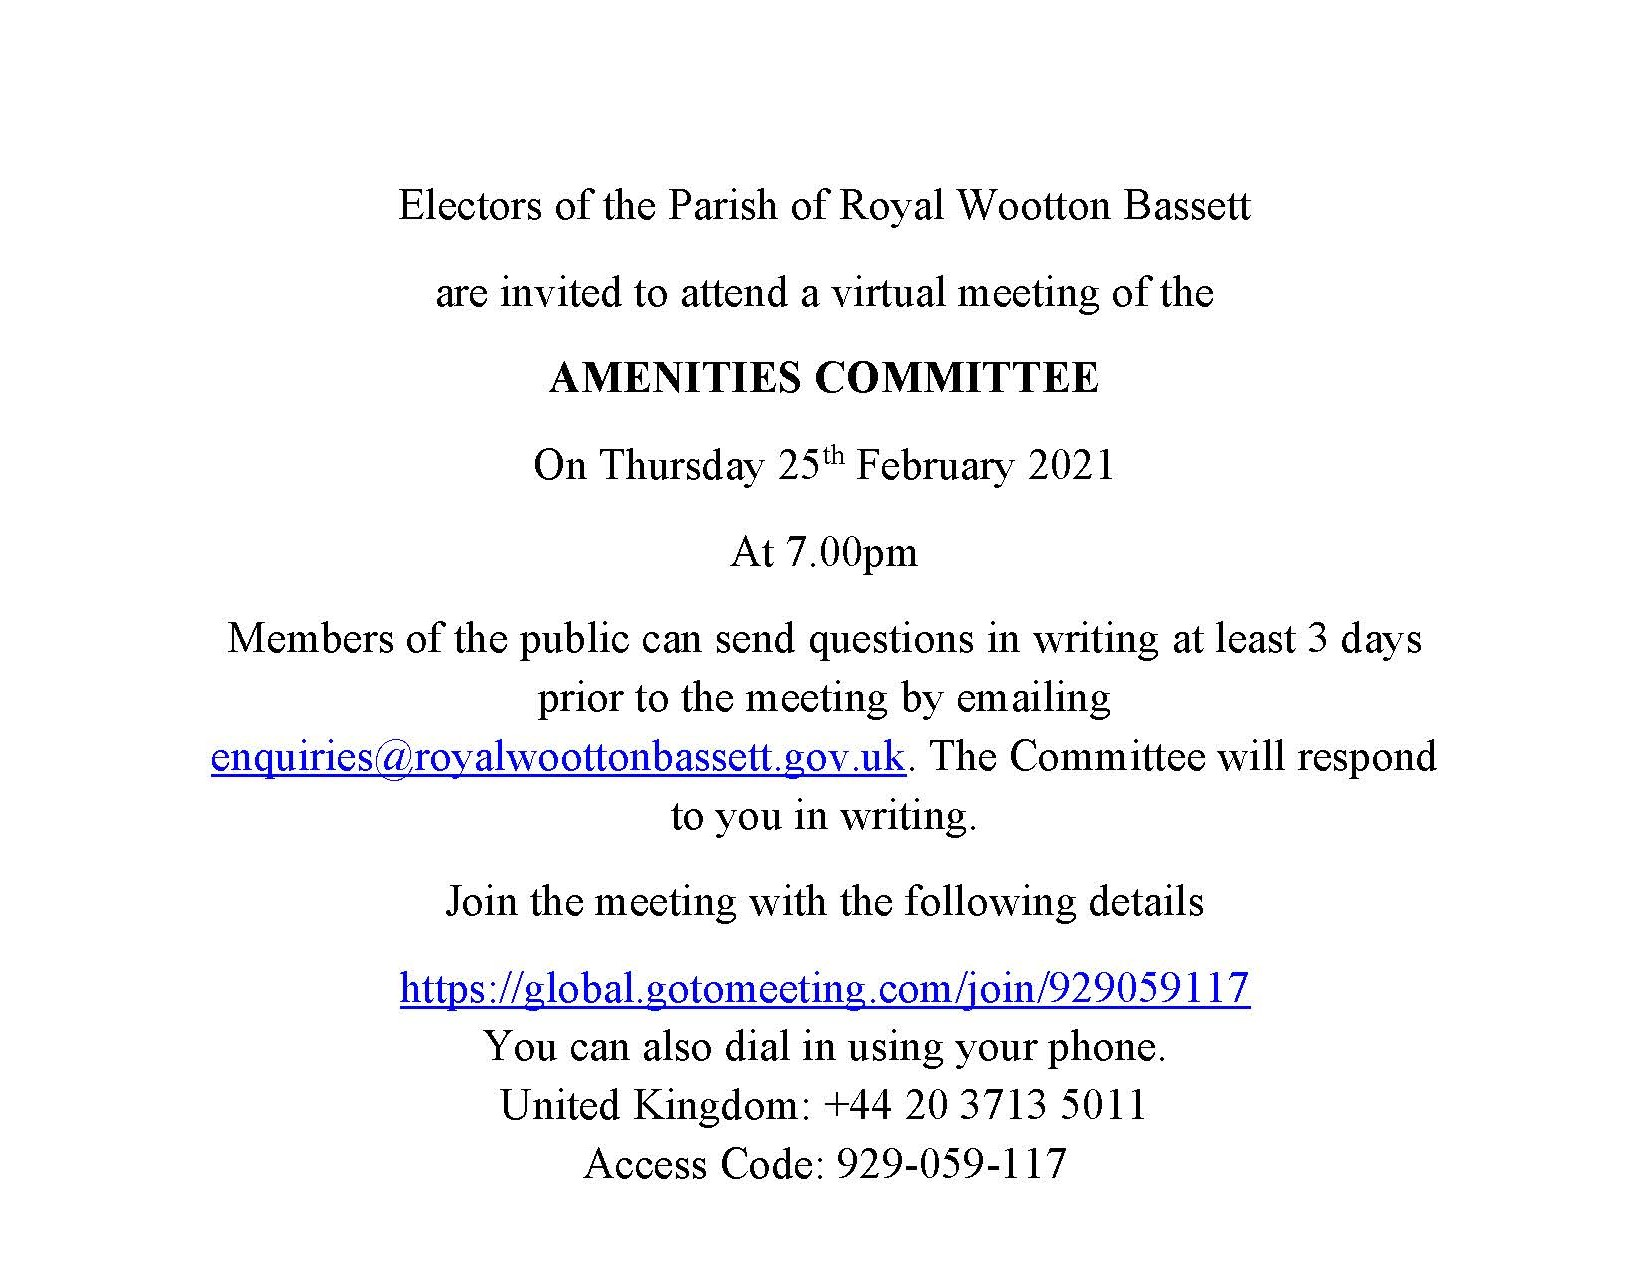 Amenities Meeting Notice on Thursday 25th February 2021